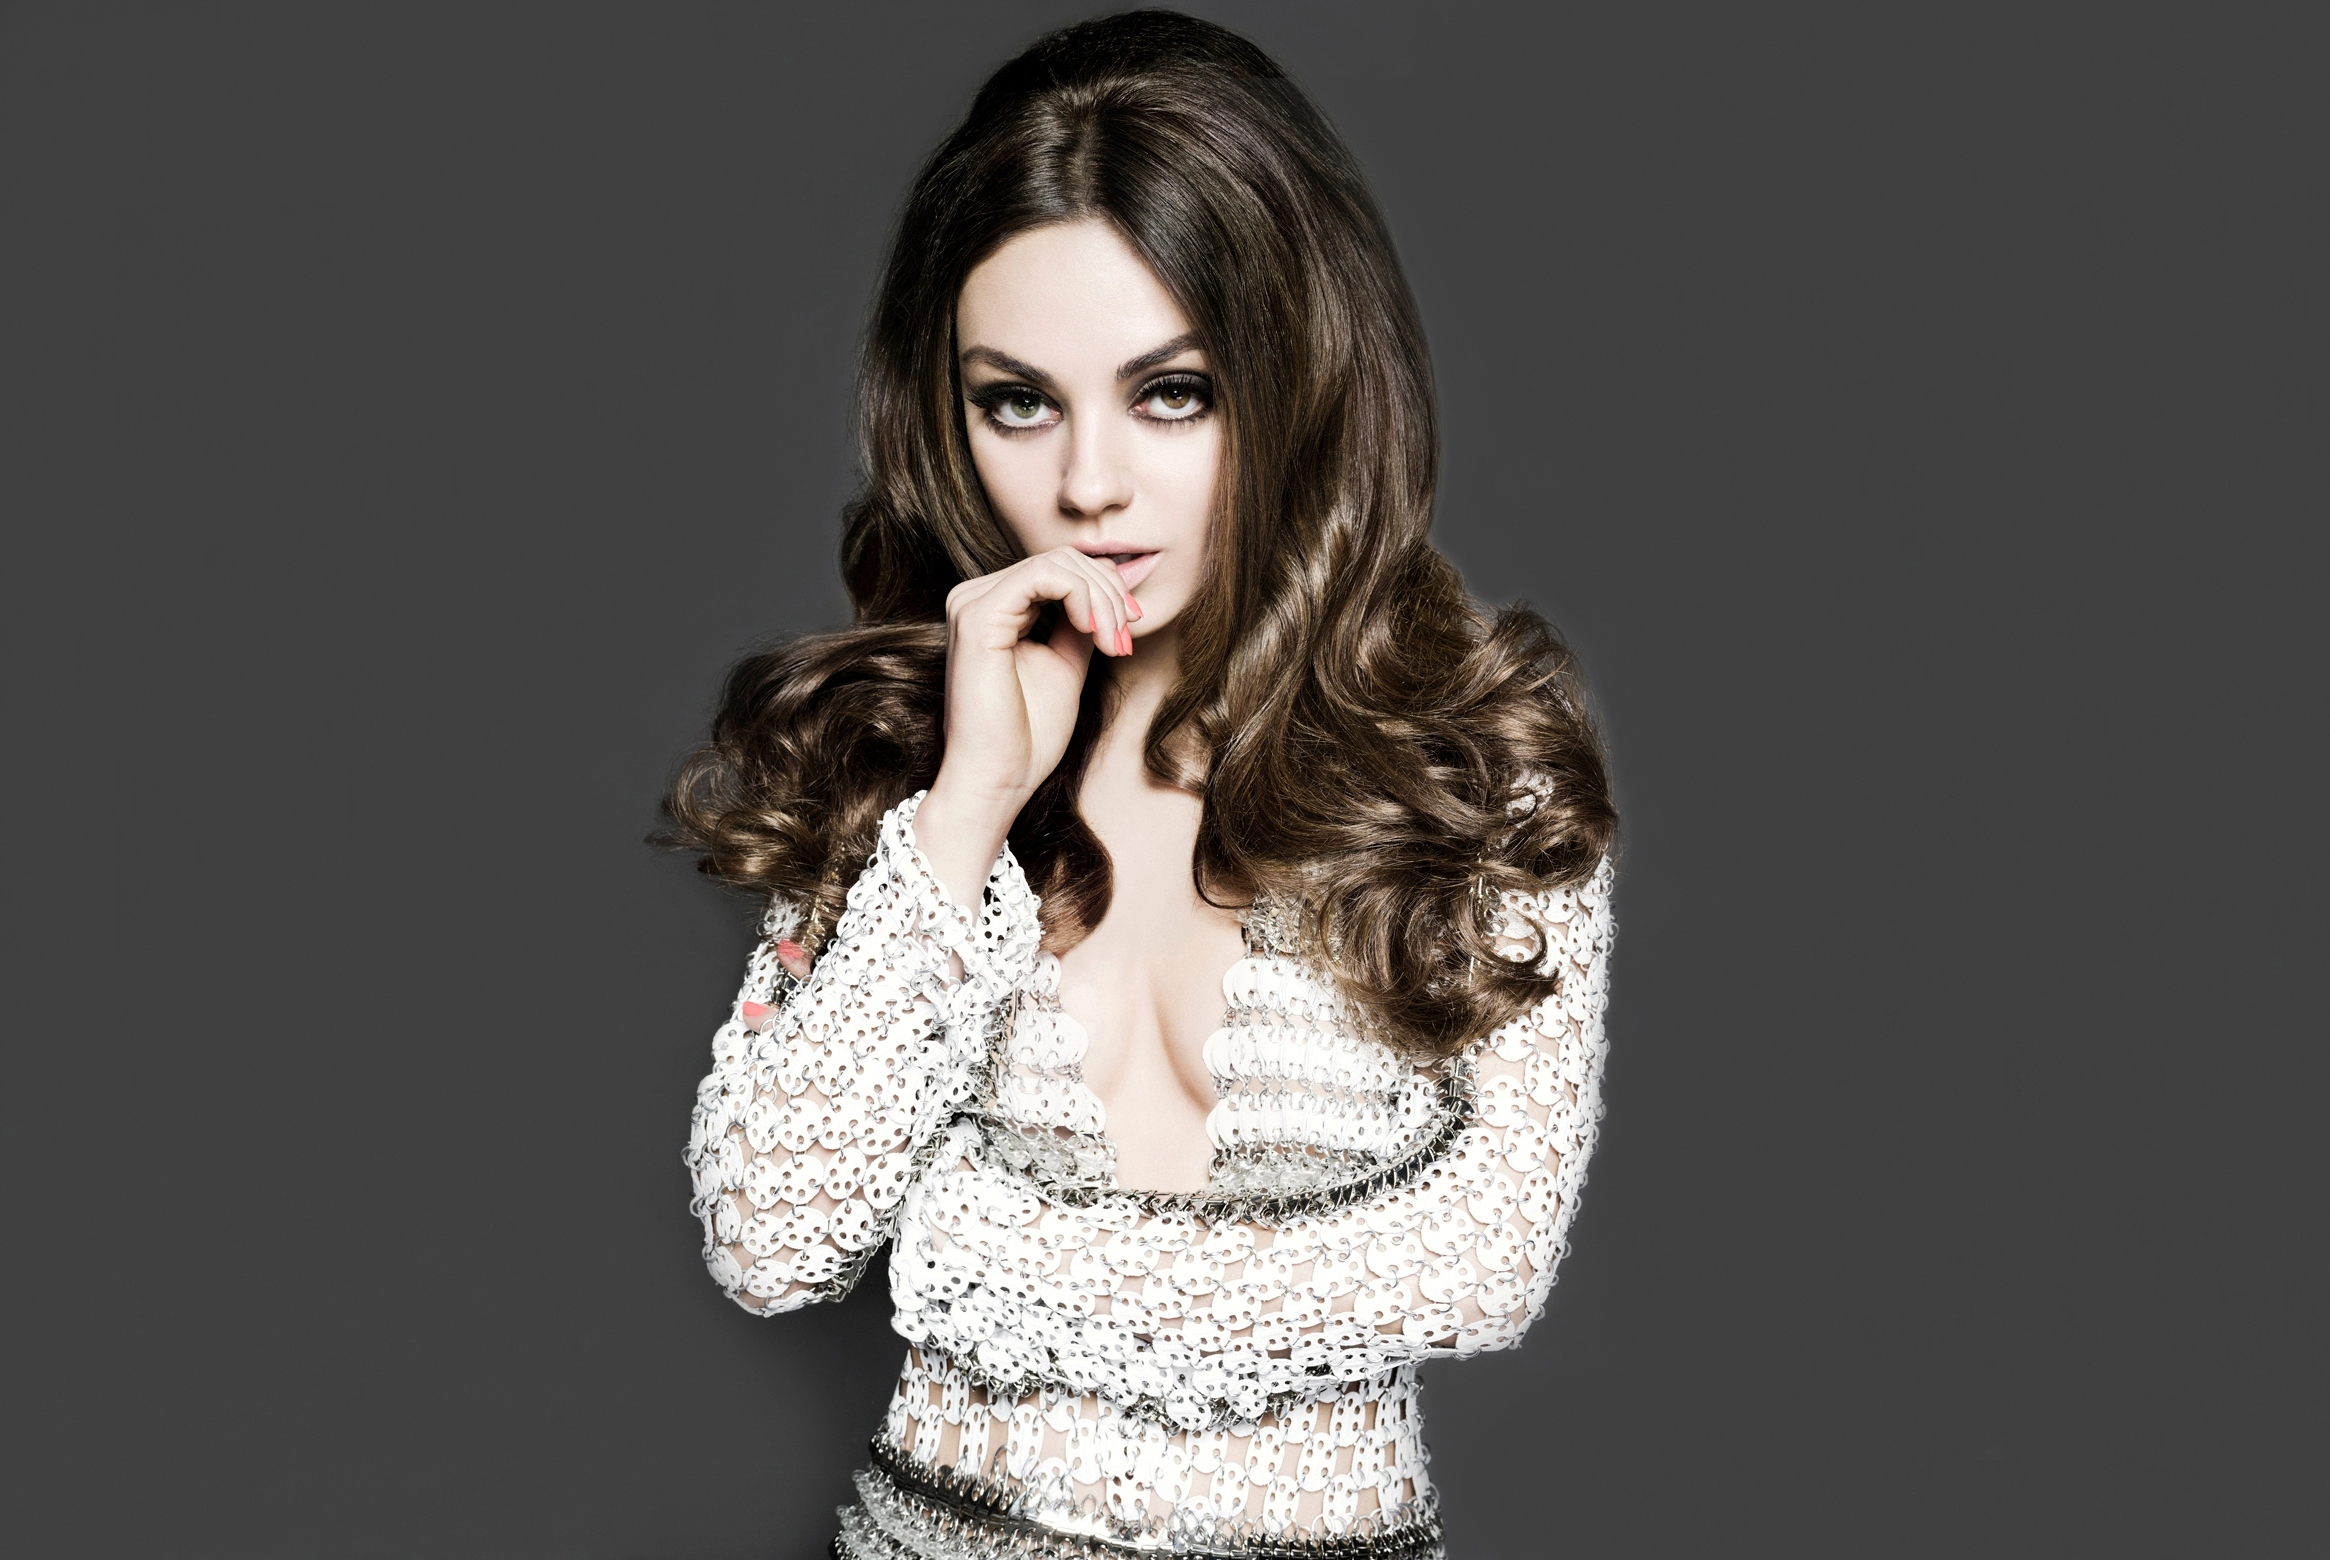 mila kunis full hd wallpaper and background image | 2330x1560 | id